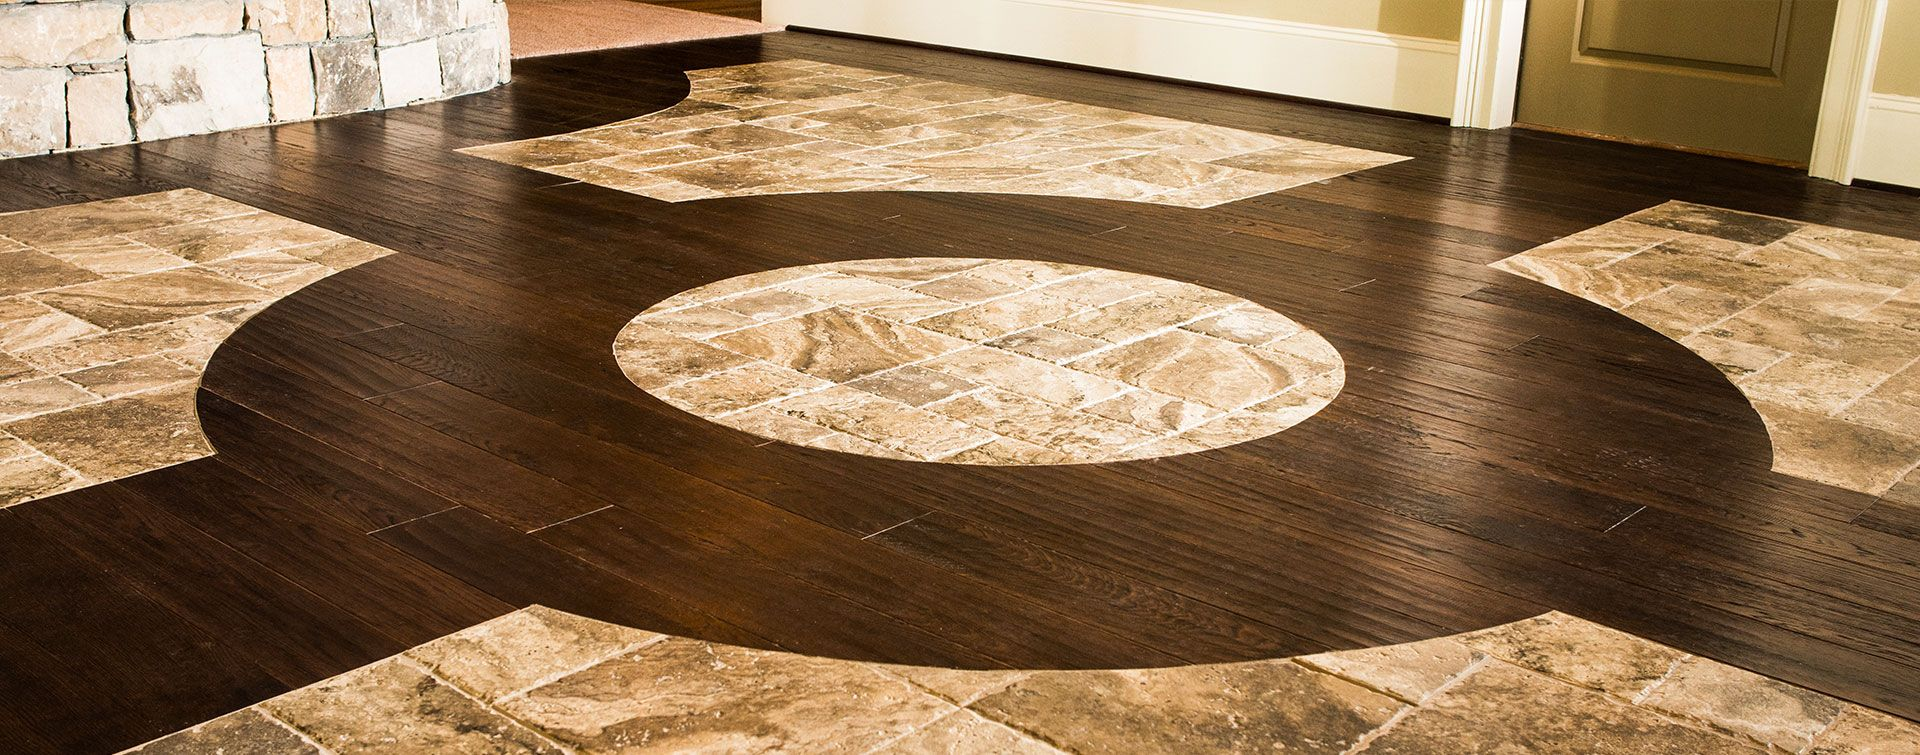 Wood Tile Flooring Patterns Google Search Laundry Pinterest Floor Design Tile Flooring